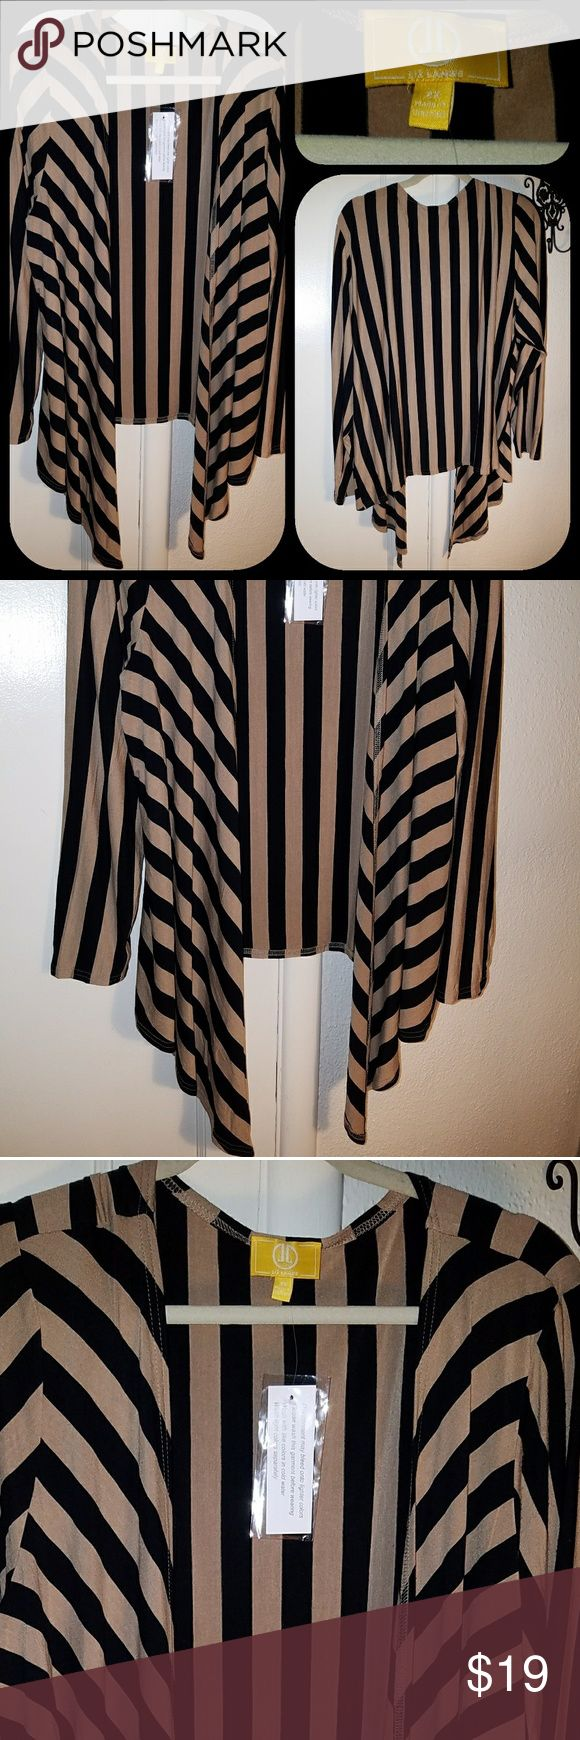 """Liz Lange Sexy Classy Drape Front Cardigan New Liz Lange Sexy, Classy Drape Front Cardigan in Nude and Black, Super Soft, Comfy, Stretchy perfect for work or play. I dislike the word Plus Size so I will continue saying my phrase """"Normal Size"""" and hope it goes viral.   I Love Bundling to Save you Money! All Items are From a Clean, Animal Friendly Home! Liz Lange Tops"""